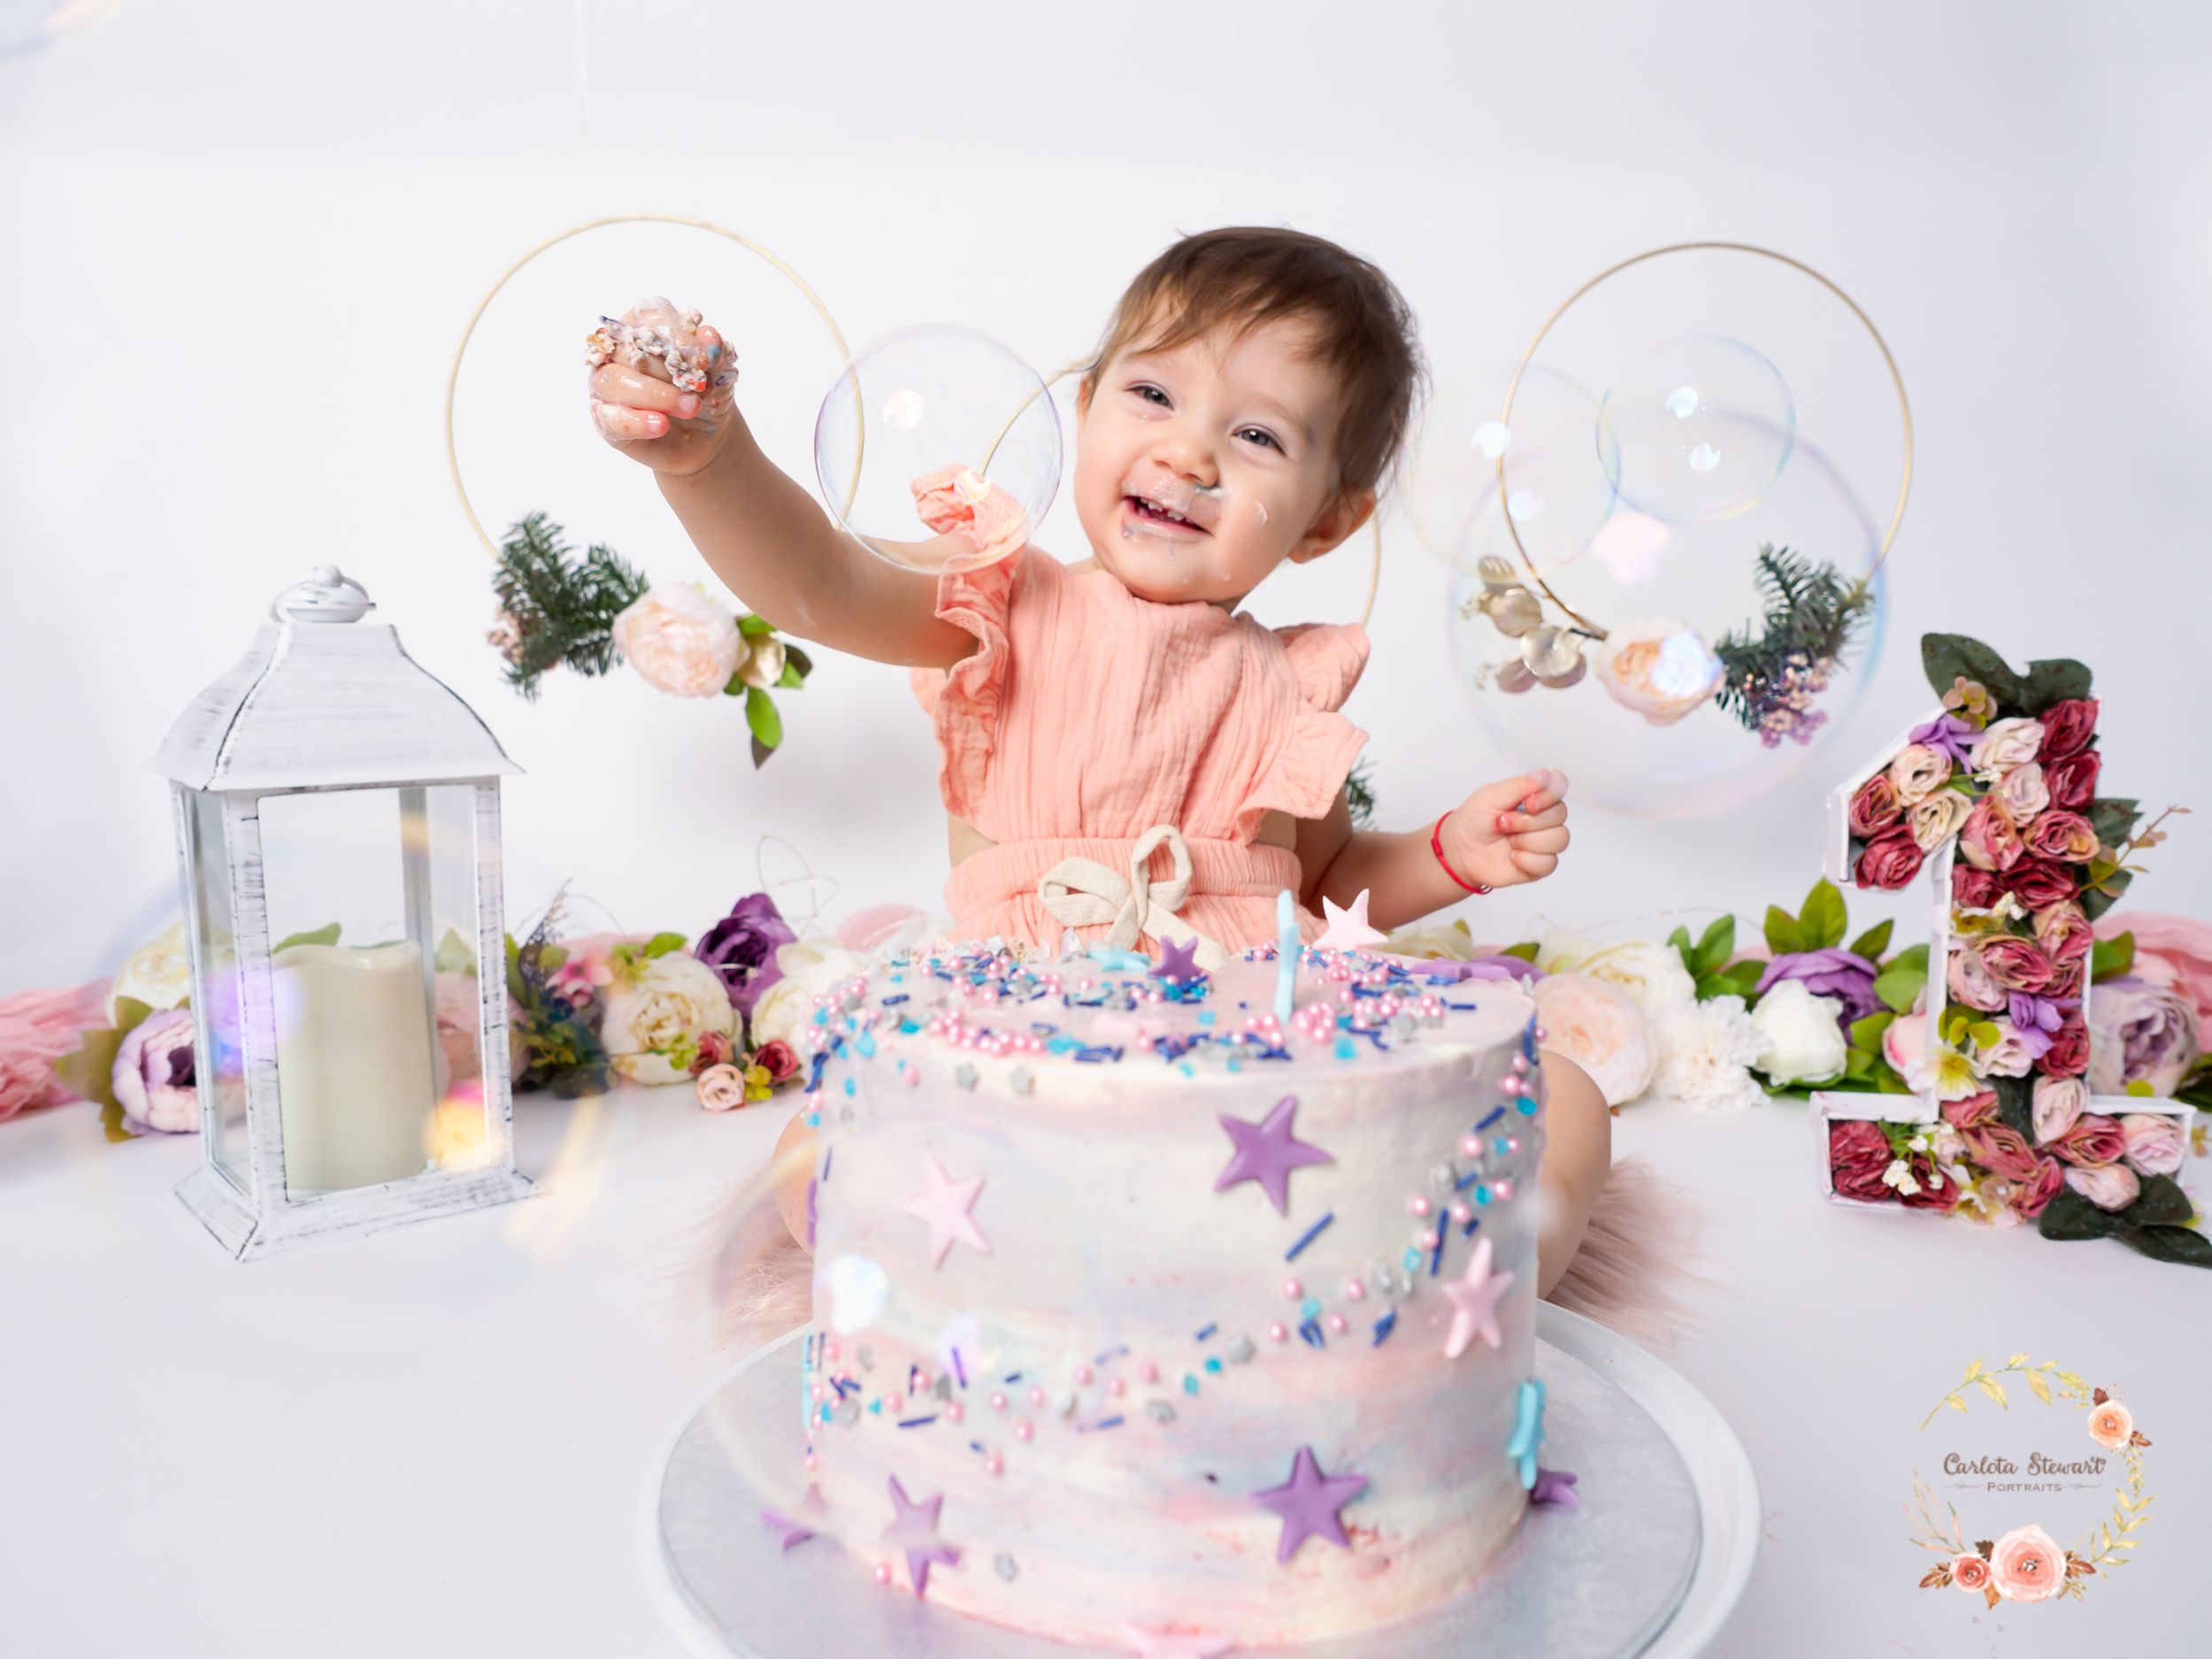 Baby girl celebrating a smash the cake in Baden, Fotostudio, Gumpoldskirchen, Austria